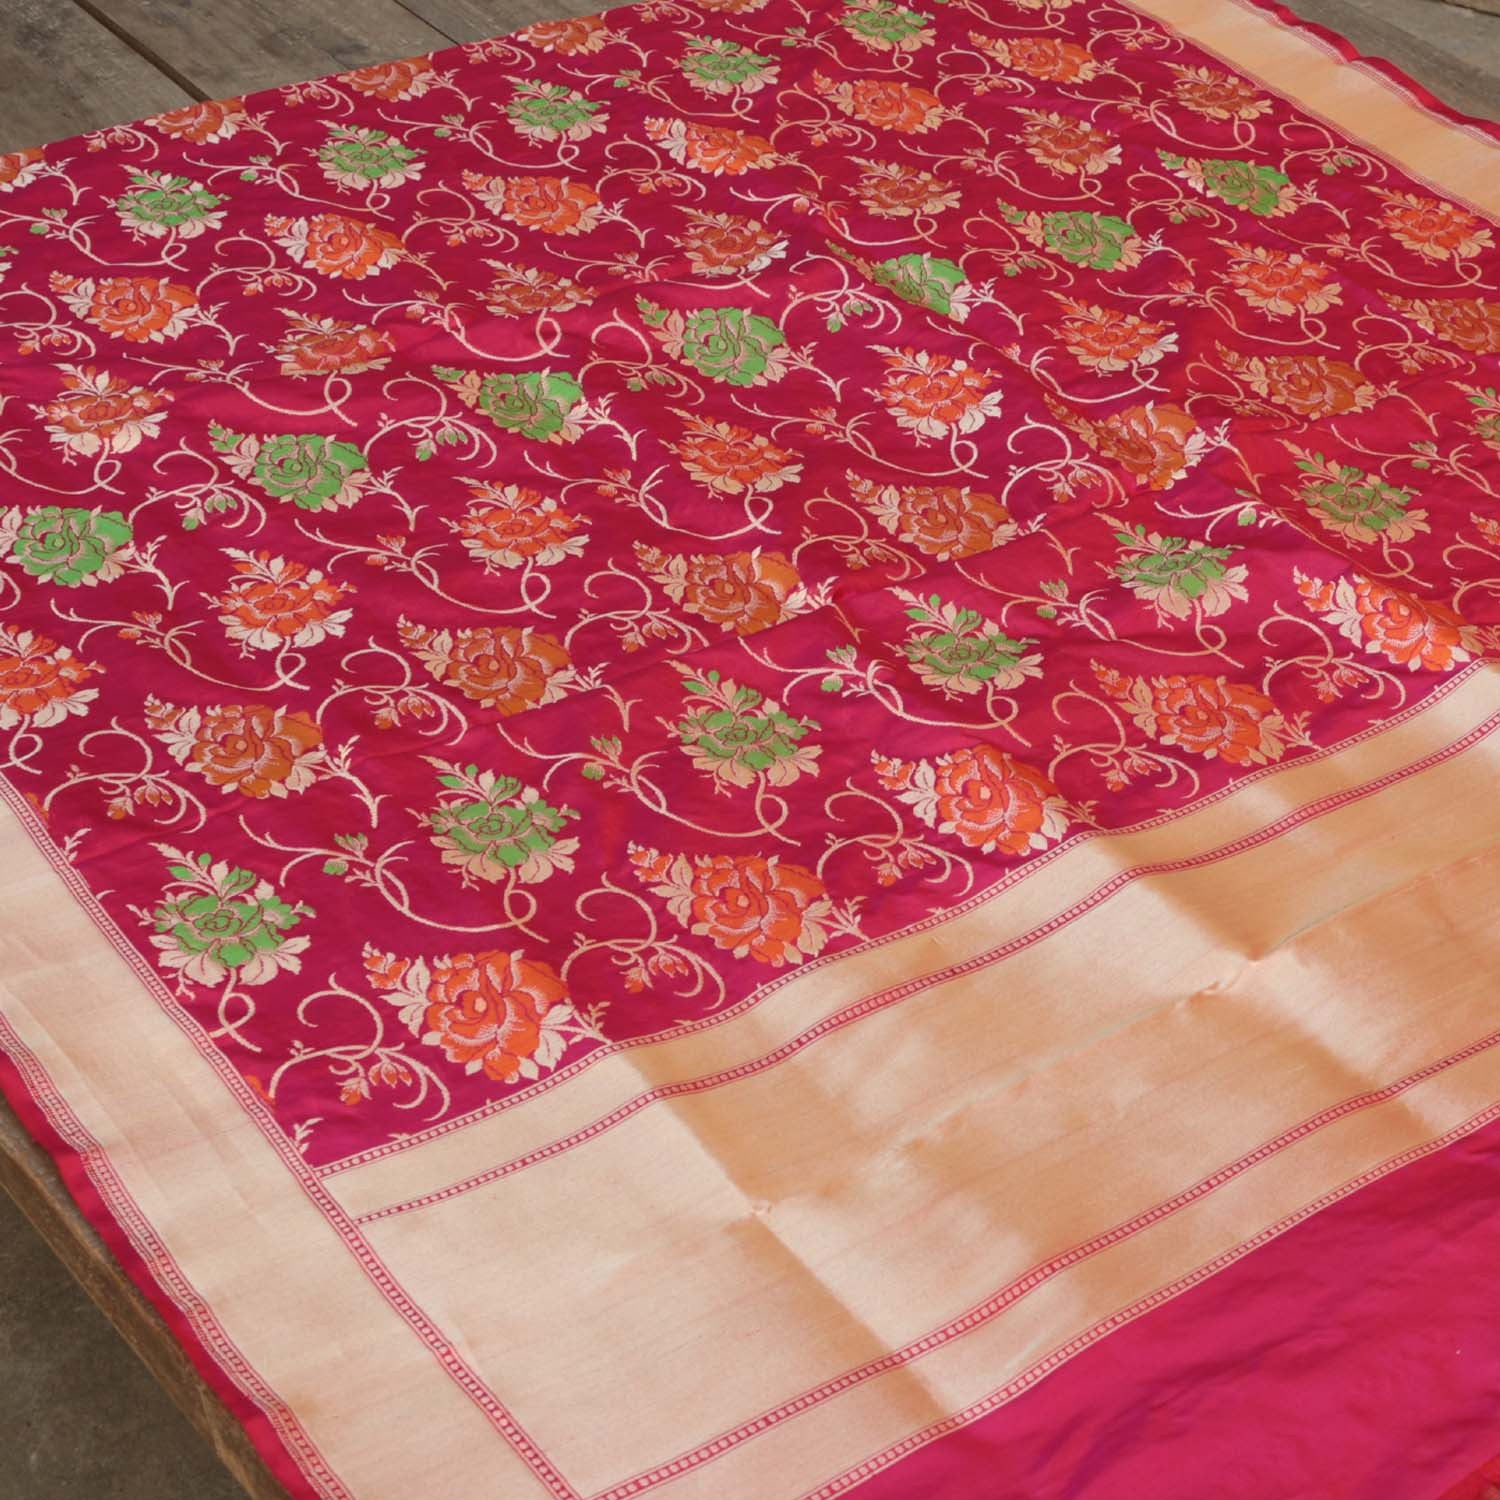 Indian Pink Pure Katan Silk  Banarasi Handloom Dupatta Red - Tilfi